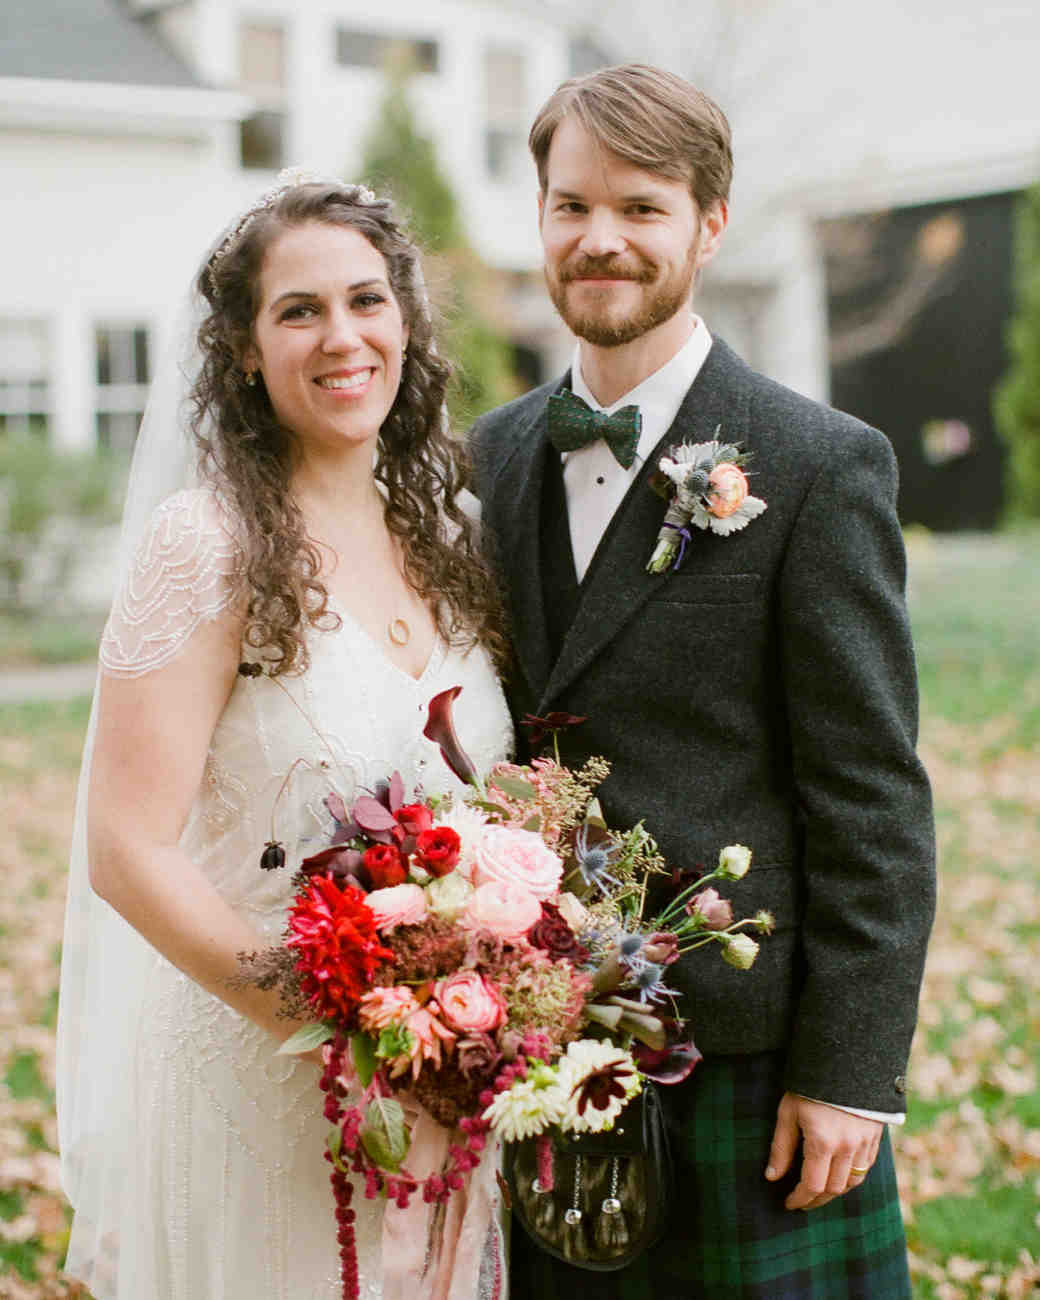 jayme-jeff-wedding-portrait1-0614.jpg